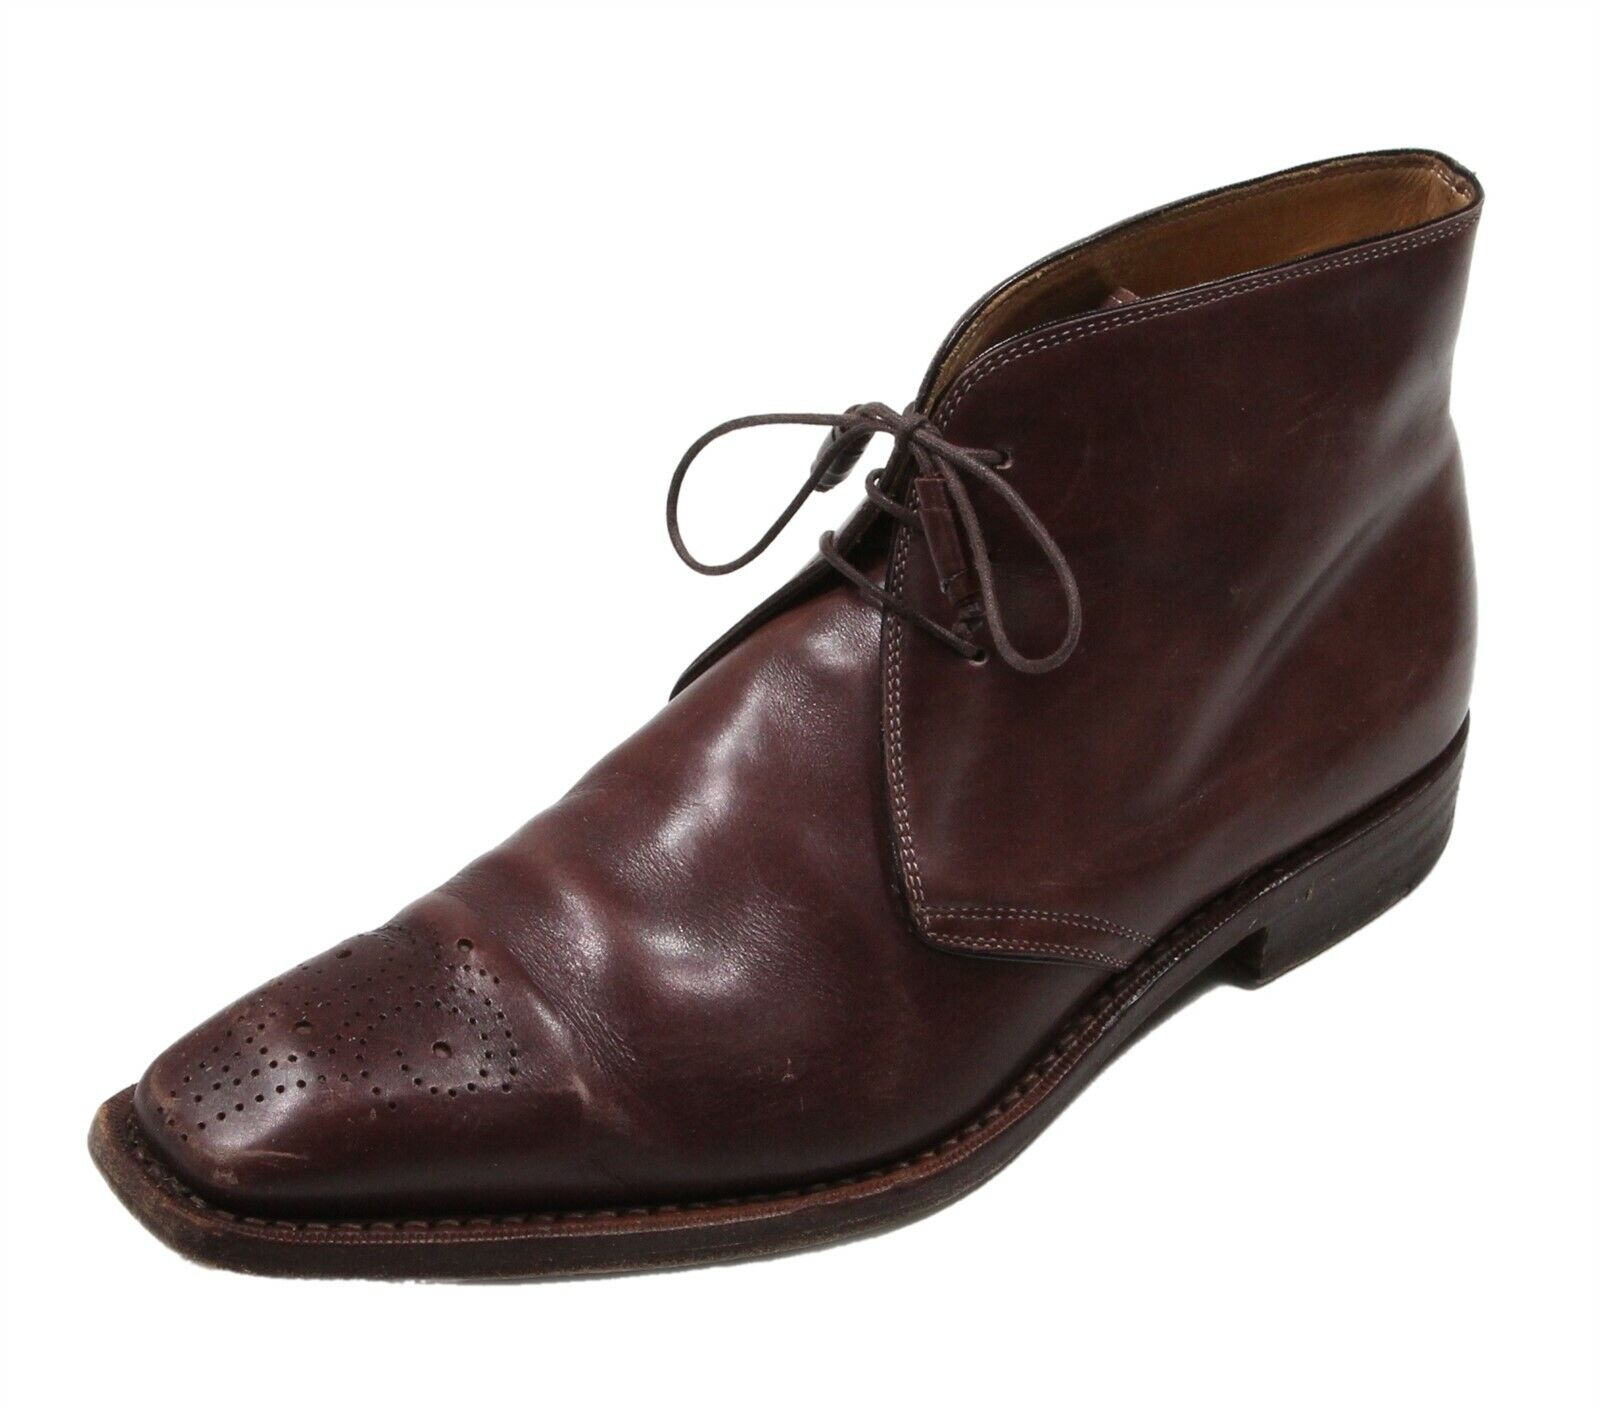 Romano Martegani Brown Ankle Lace-Up Leather Boots Men's US 9.5